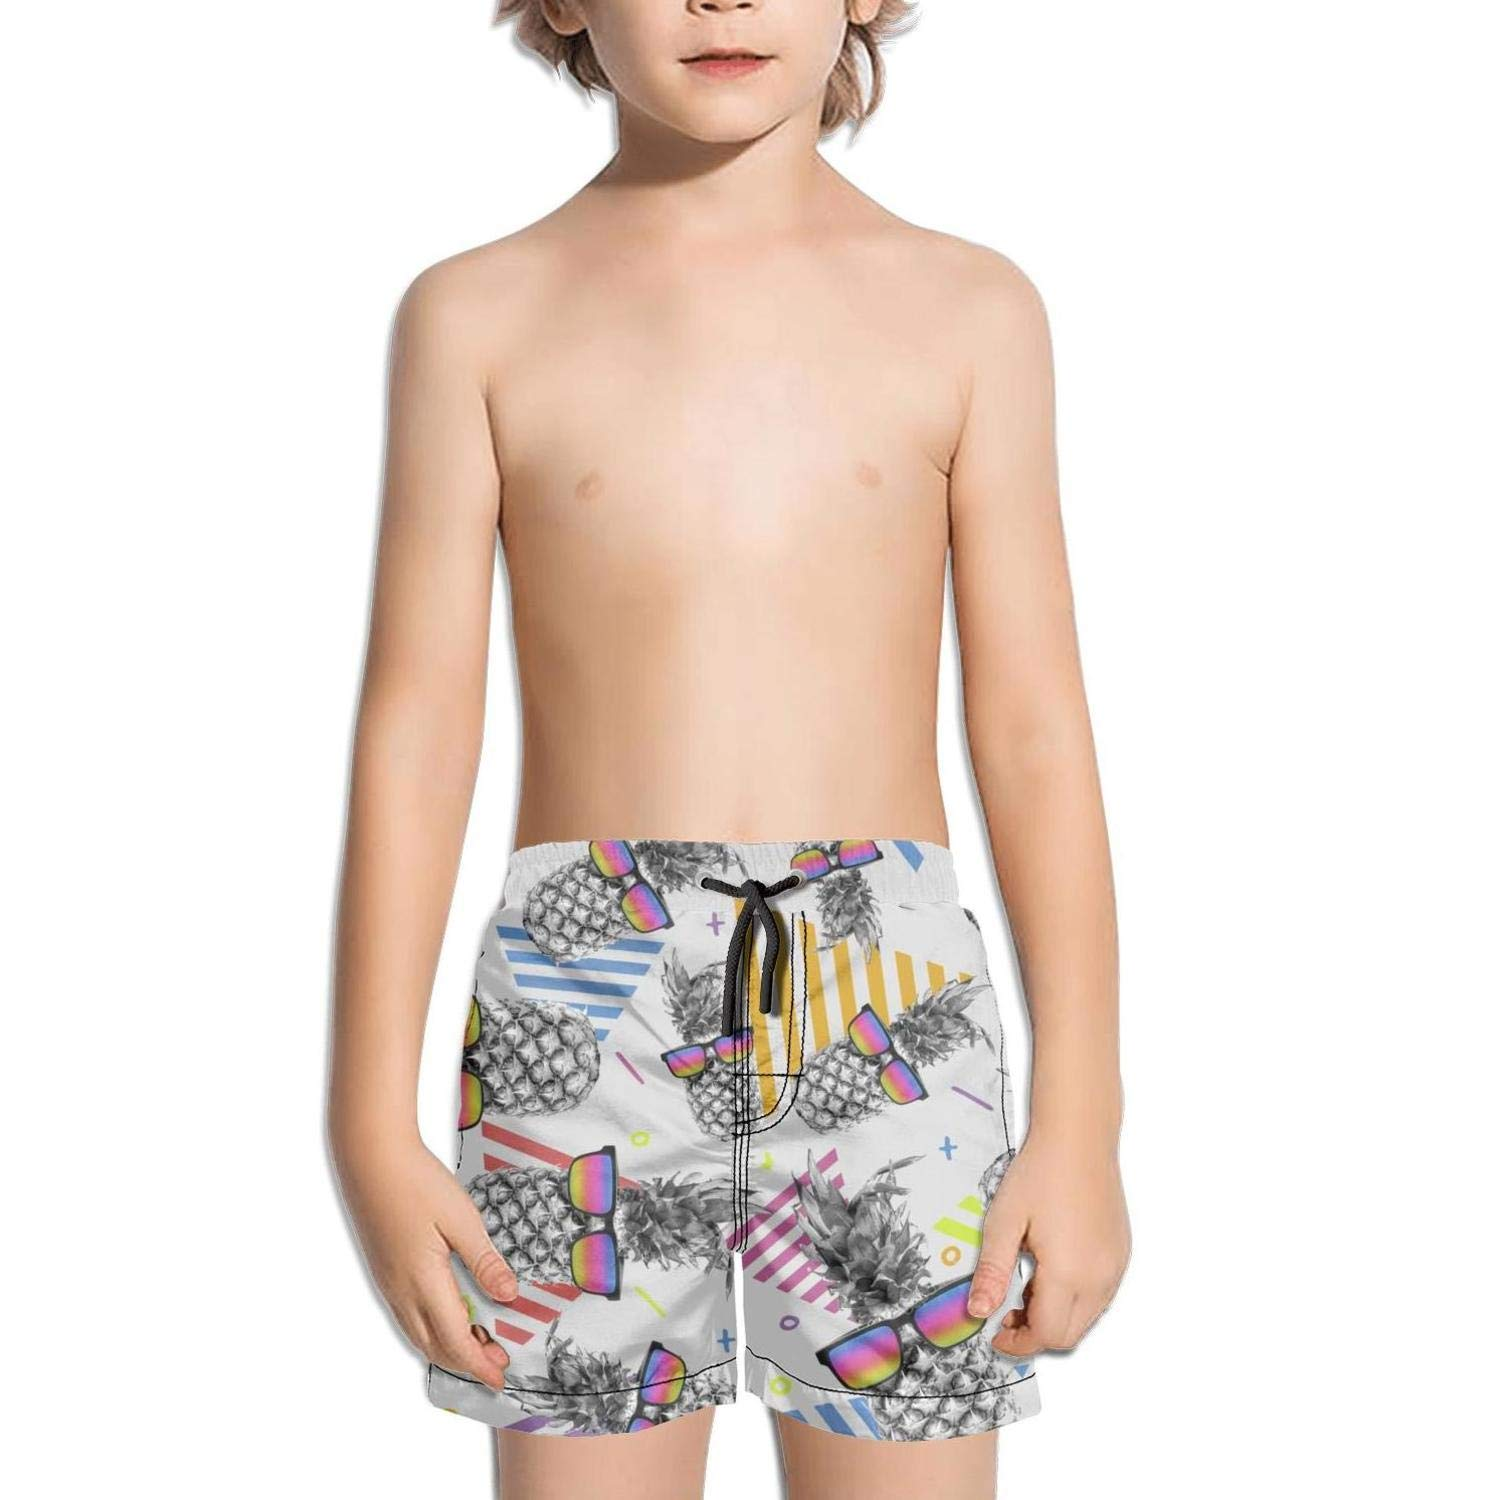 Ouxioaz Boys' Swim Trunk Awesome Style Pineapple with Vintage Eye Glasses Beach Board Shorts